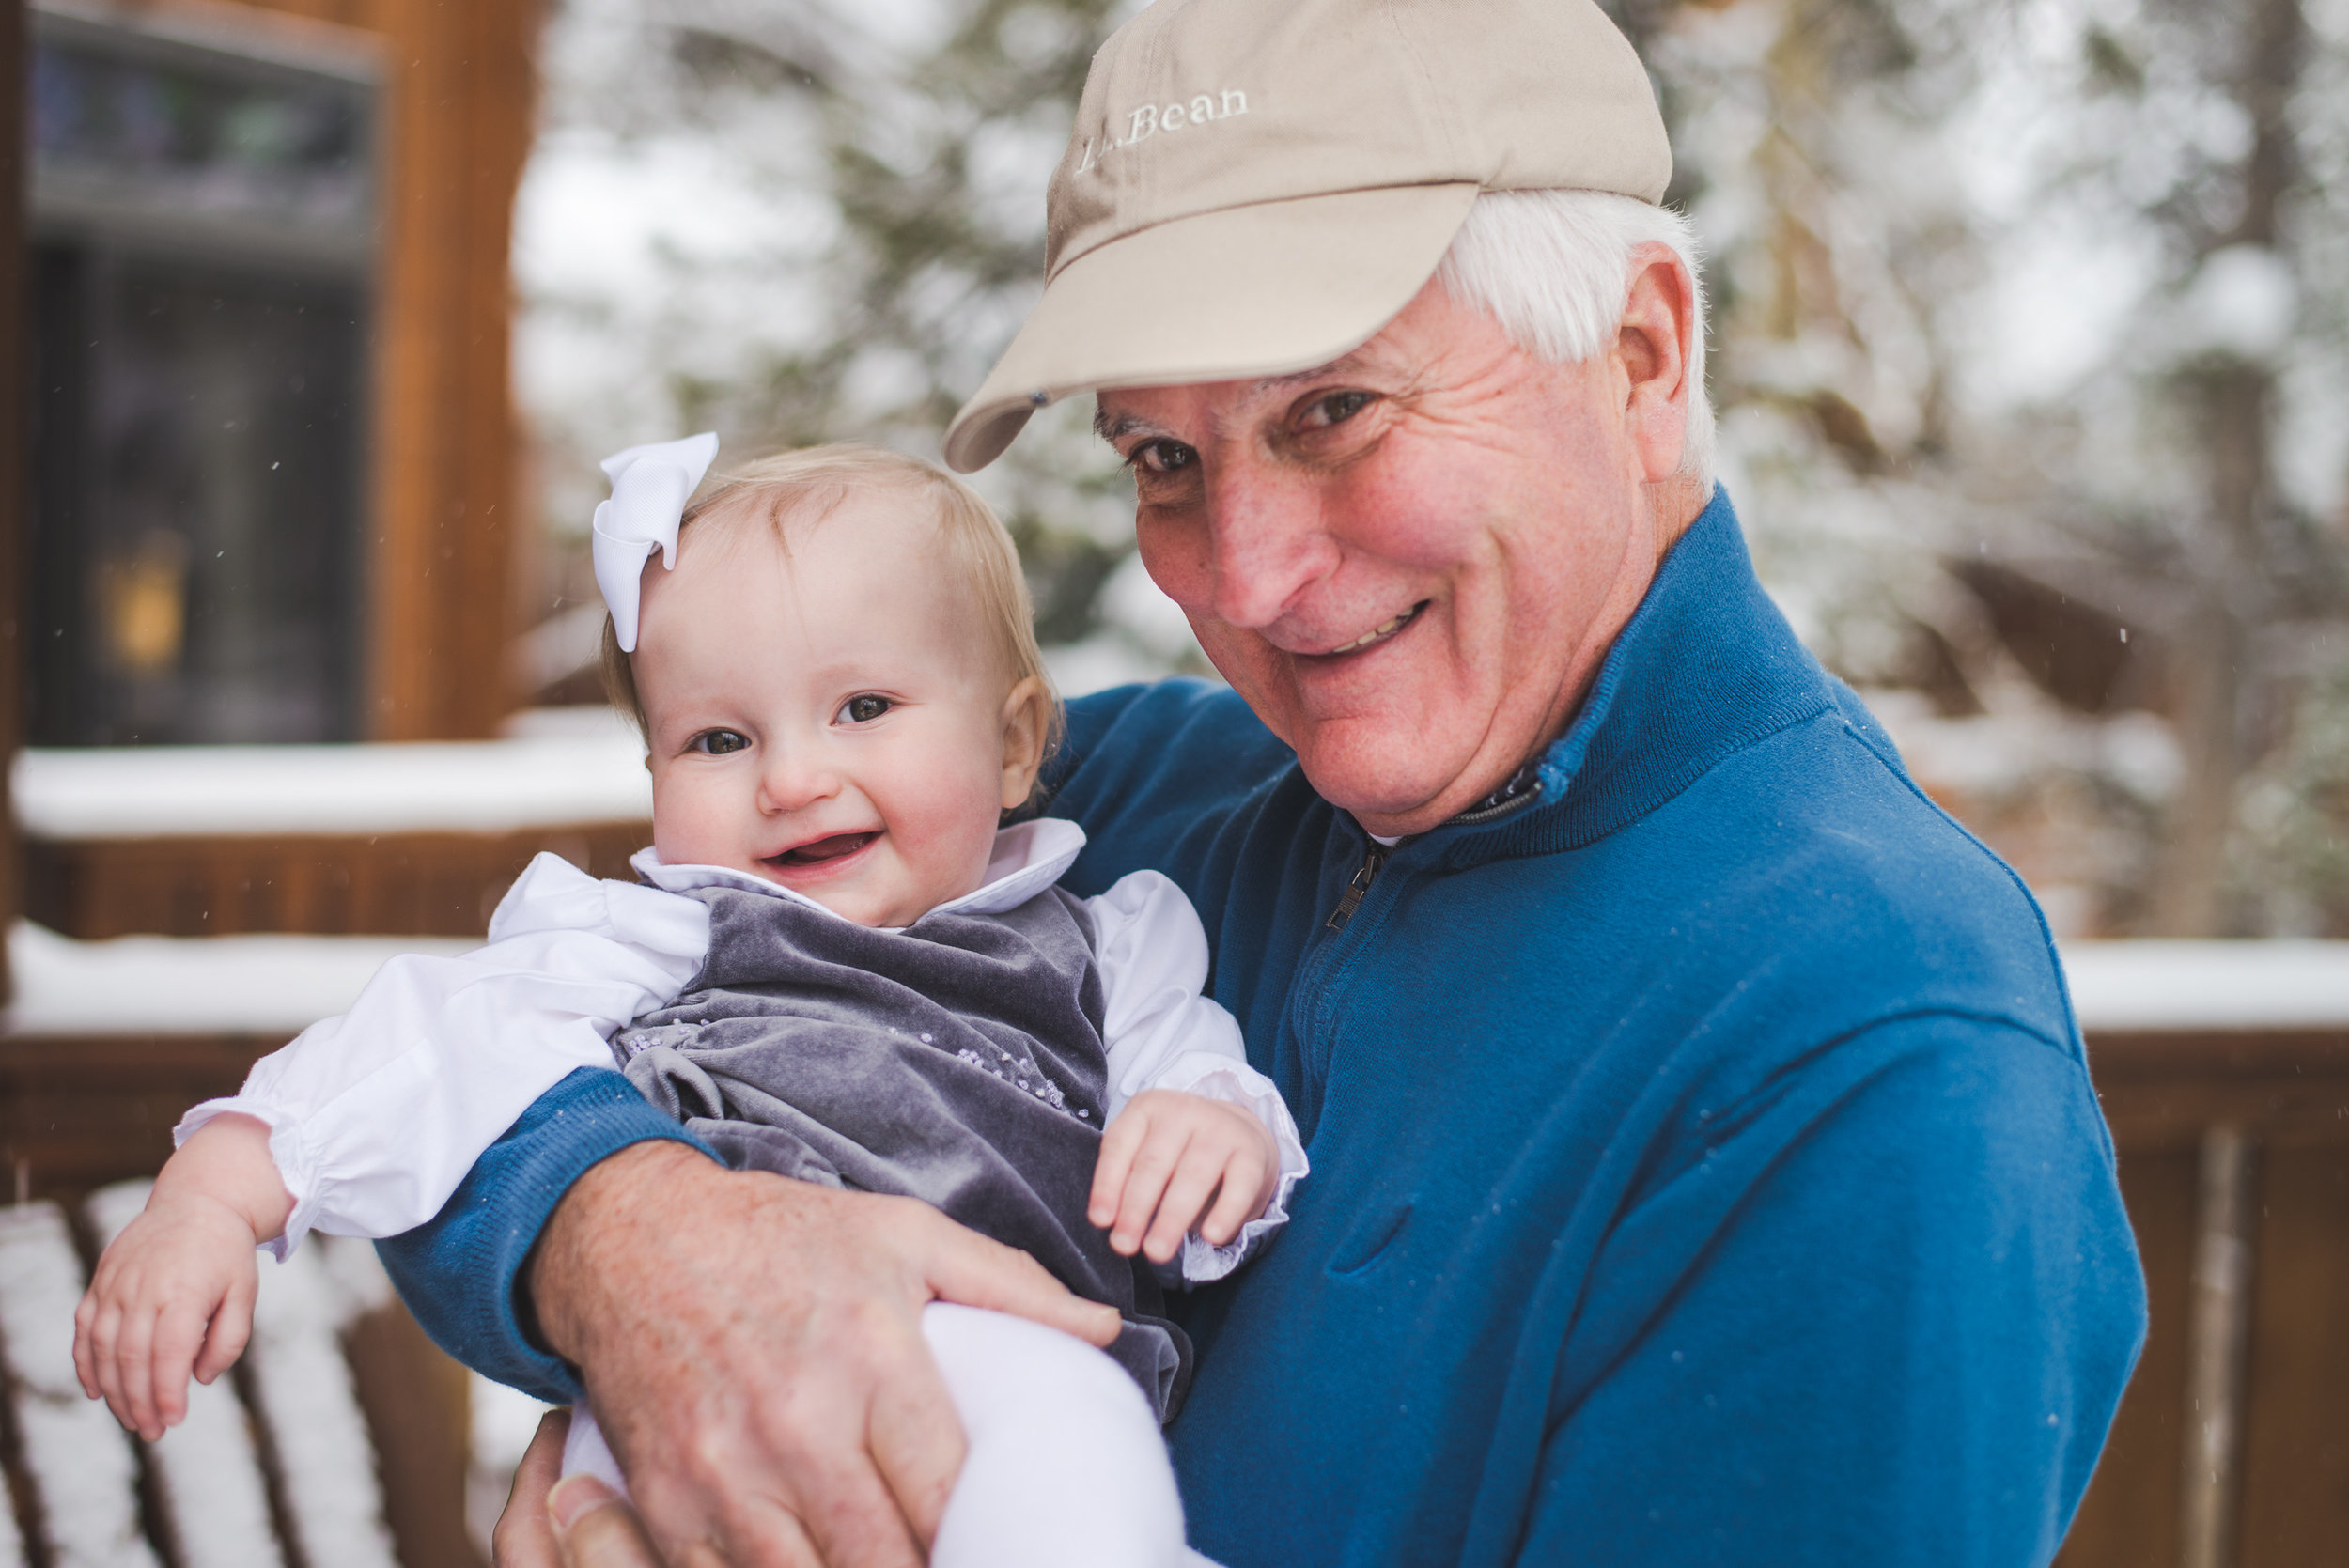 grandpa and his littlest granddaughter pose for an adorable moment during their large winter family photo shoot in Breckenridge, Colorado